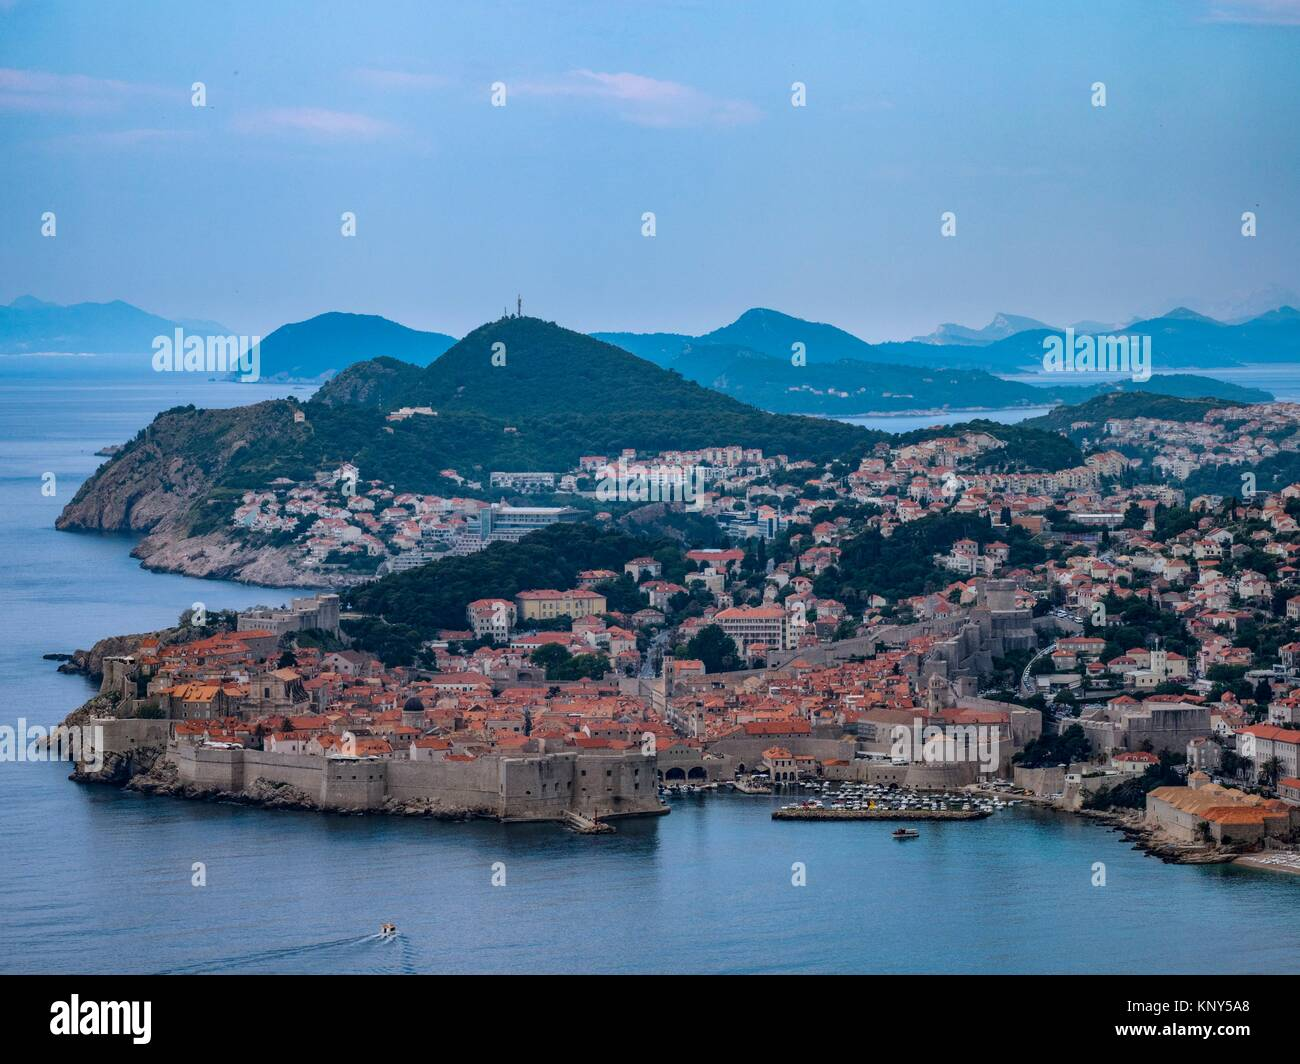 Dubrovnik Croatia Overview Old Town. - Stock Image